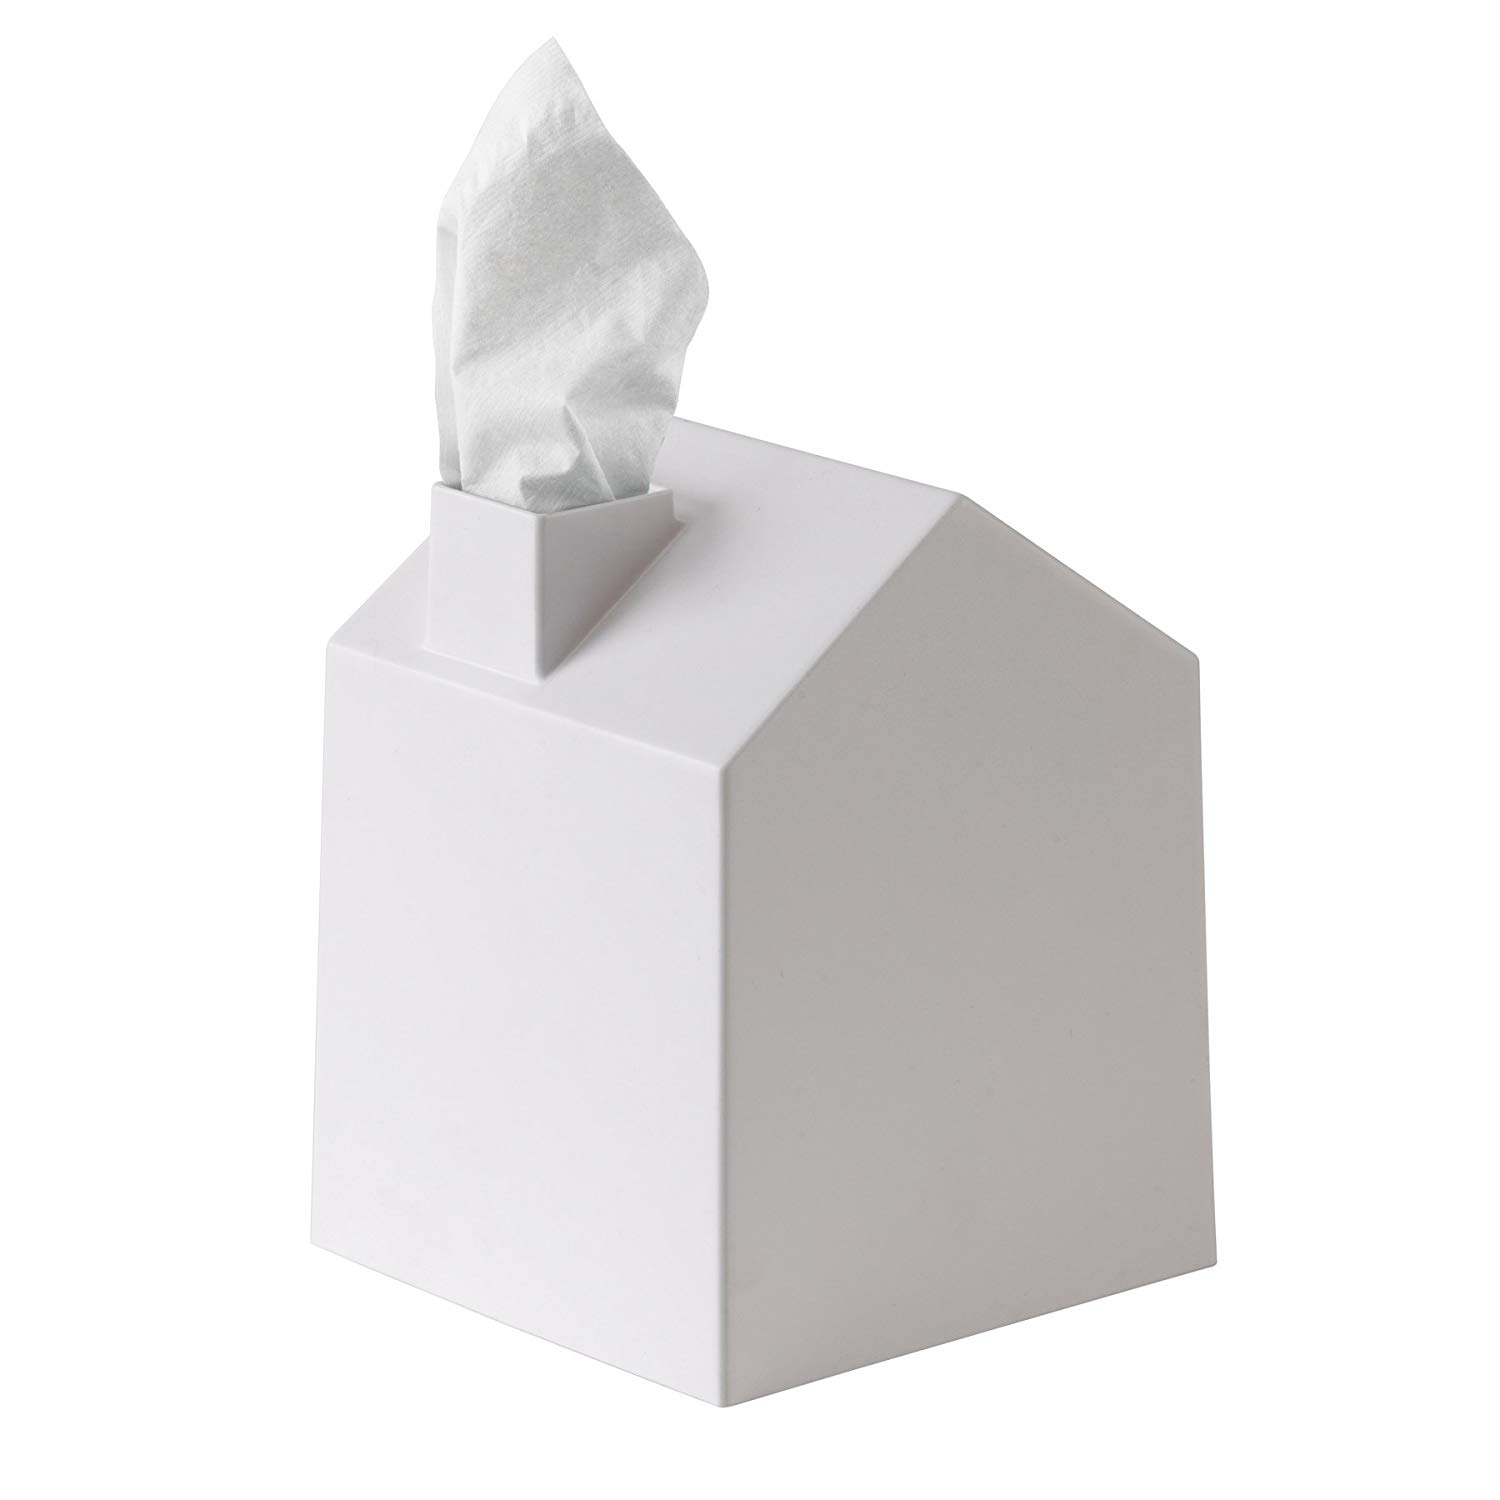 the best holiday gift ideas under $25 house shaped tissue box cover